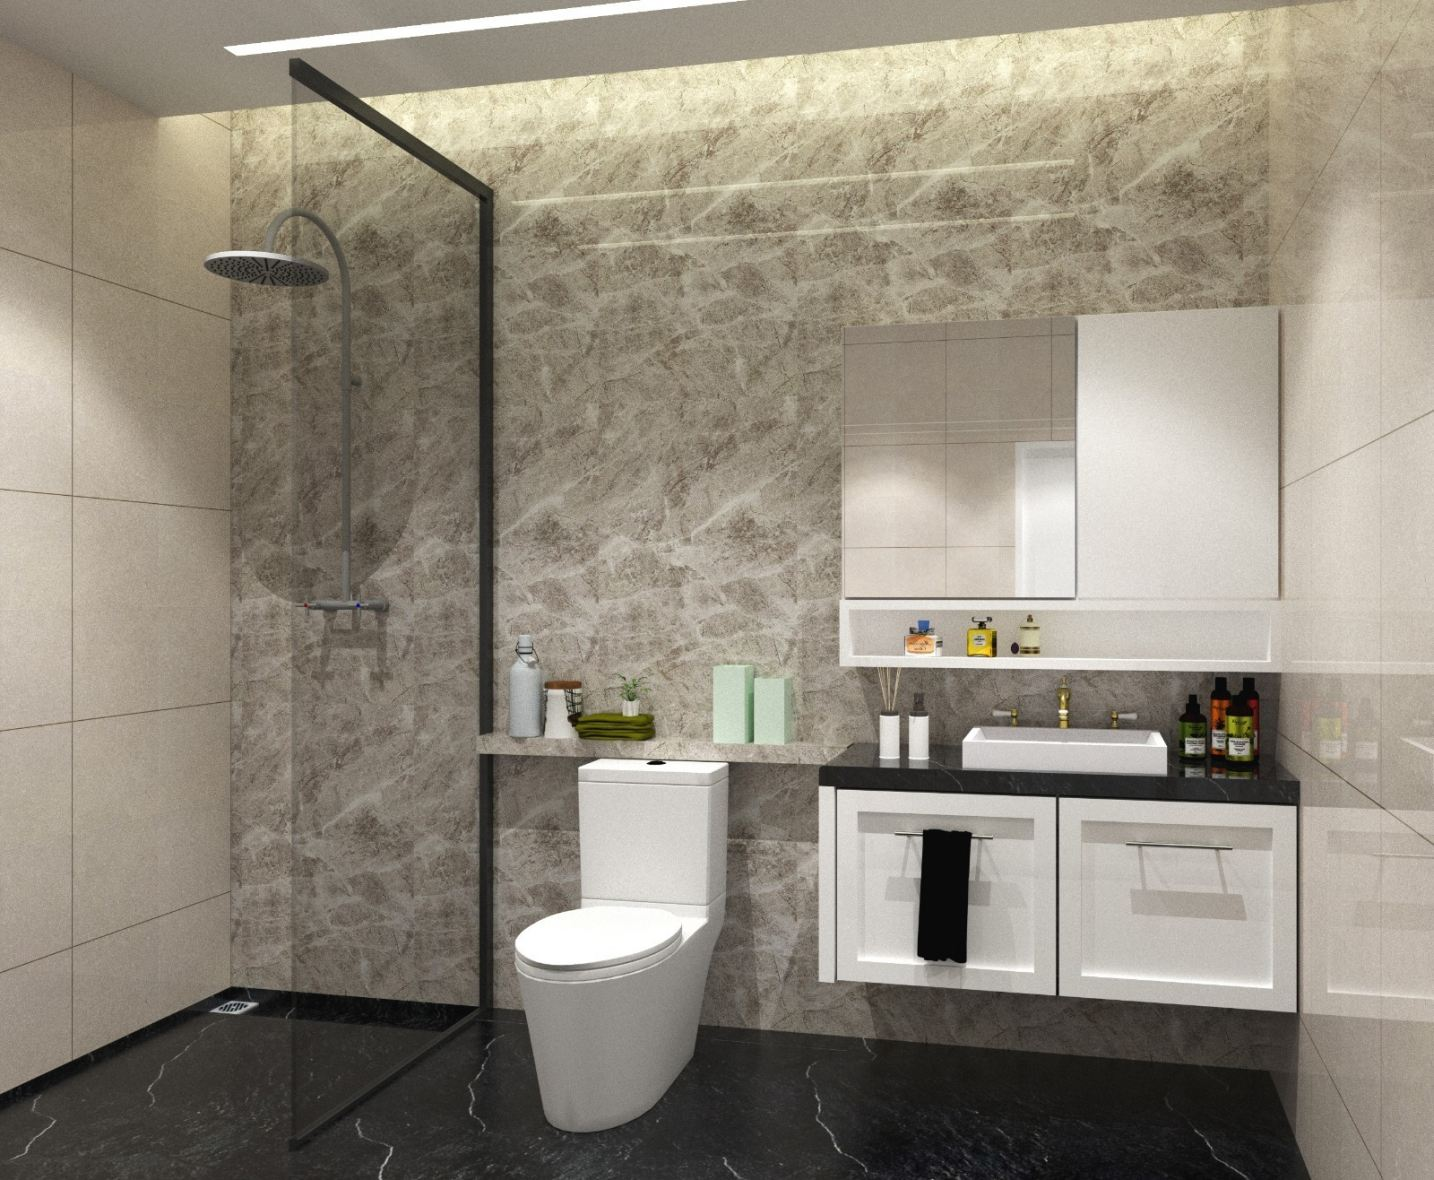 Washroom Interior Design Perak Malaysia Ipoh Supplier Suppliers Supply Supplies Home Style Furniture And Trading